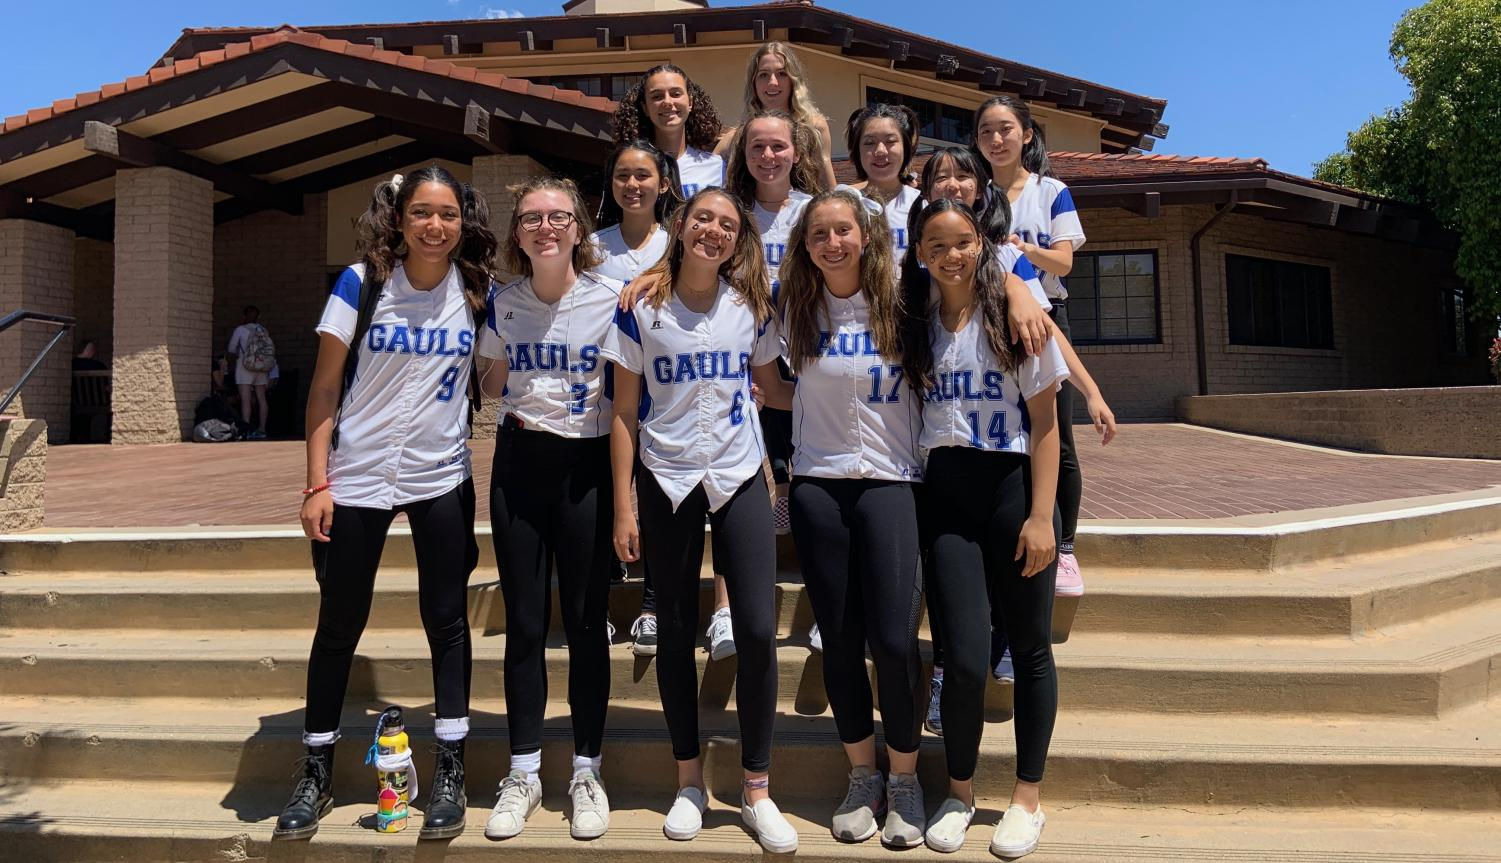 The 2019 VWS softball team celebrates their senior spirit for their graduating members.